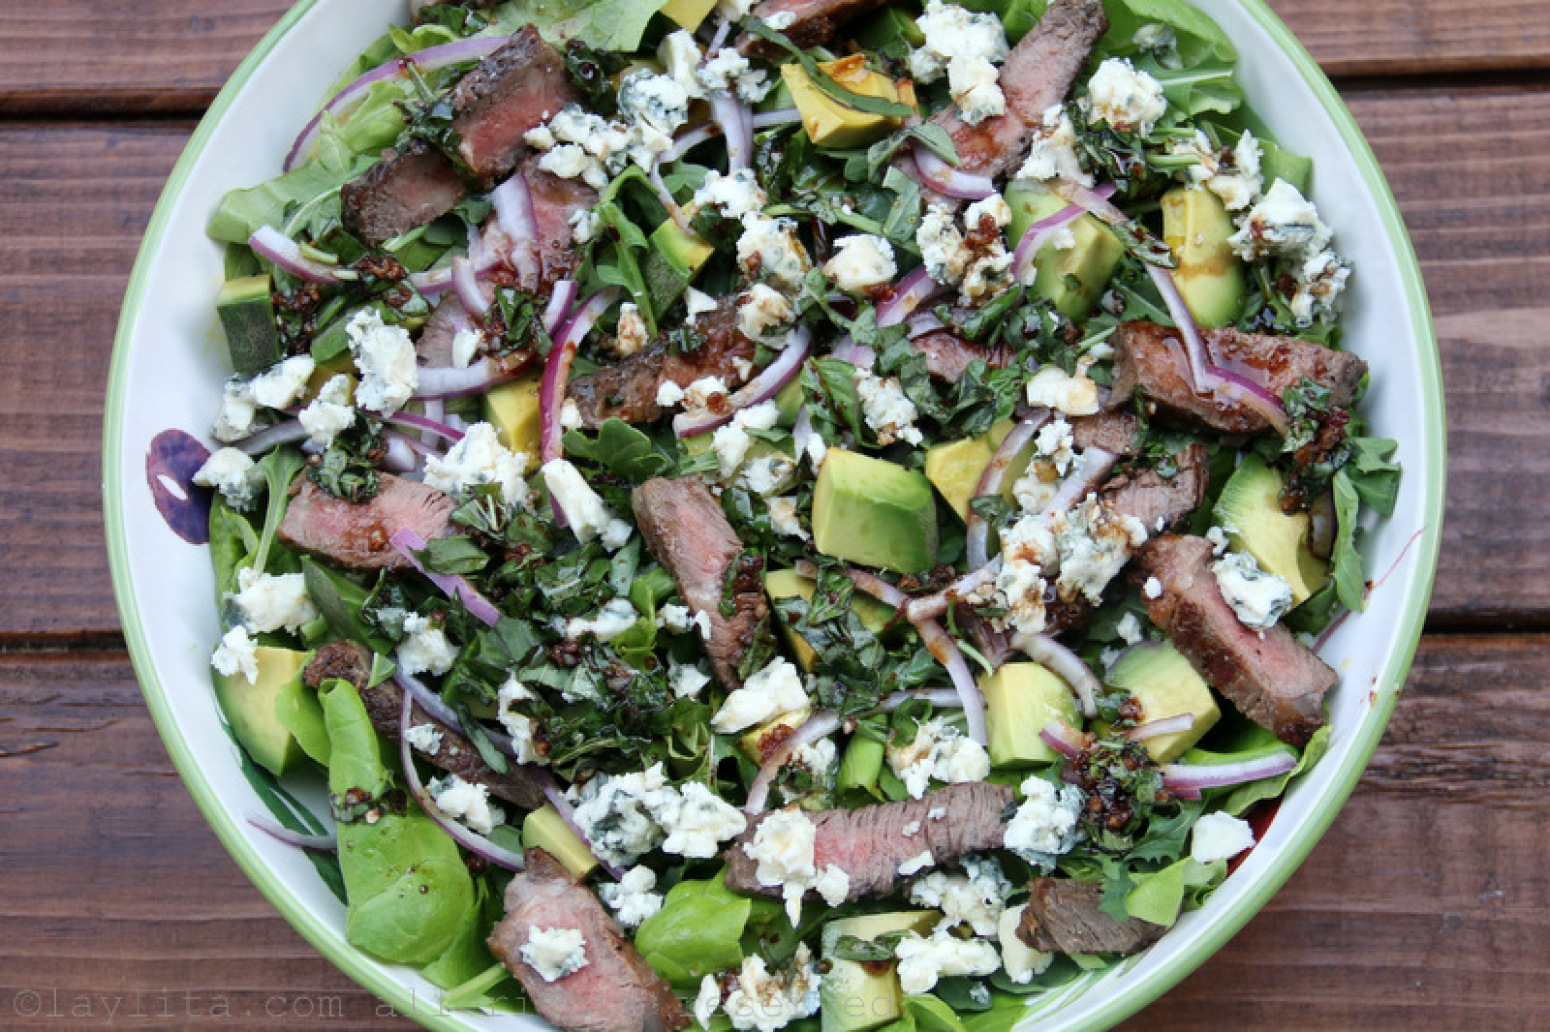 Steak salad with blue cheese, avocado and basil balsamic dressing ...